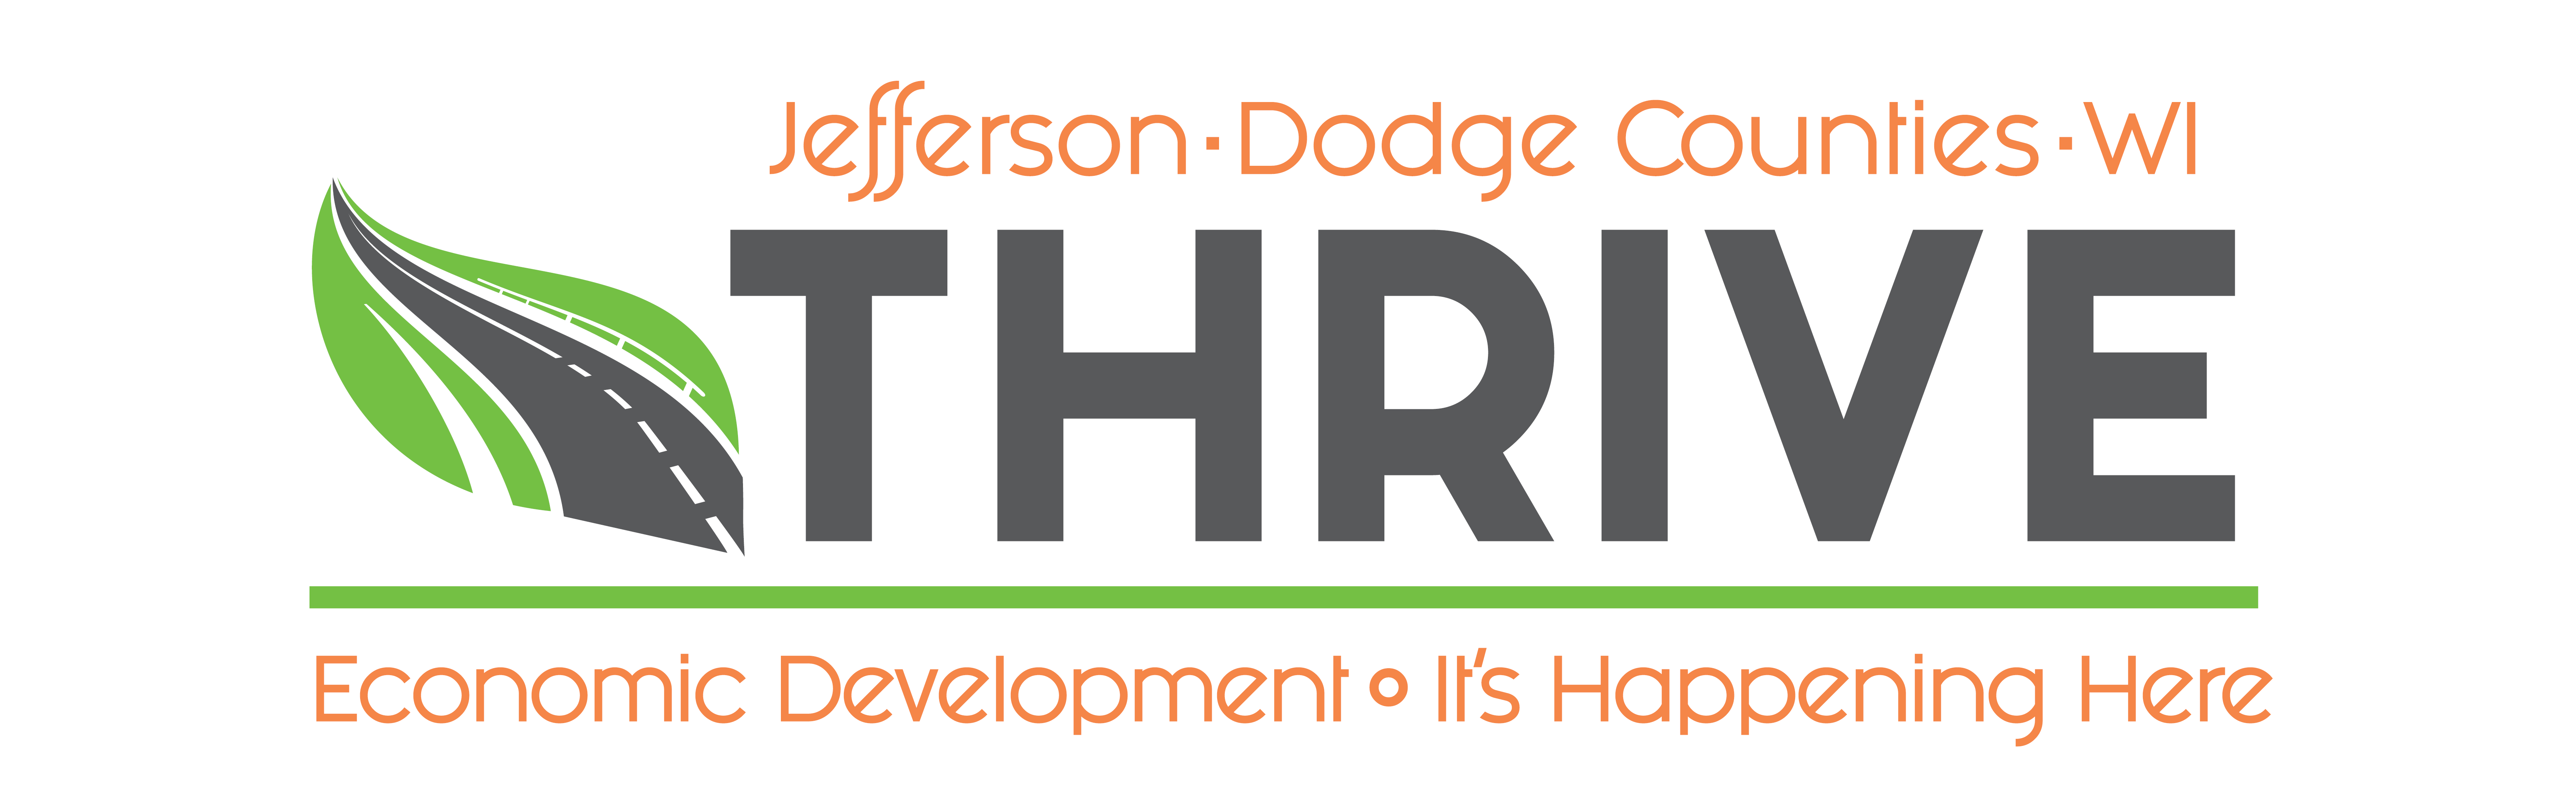 thrive economic development jefferson wisconsin